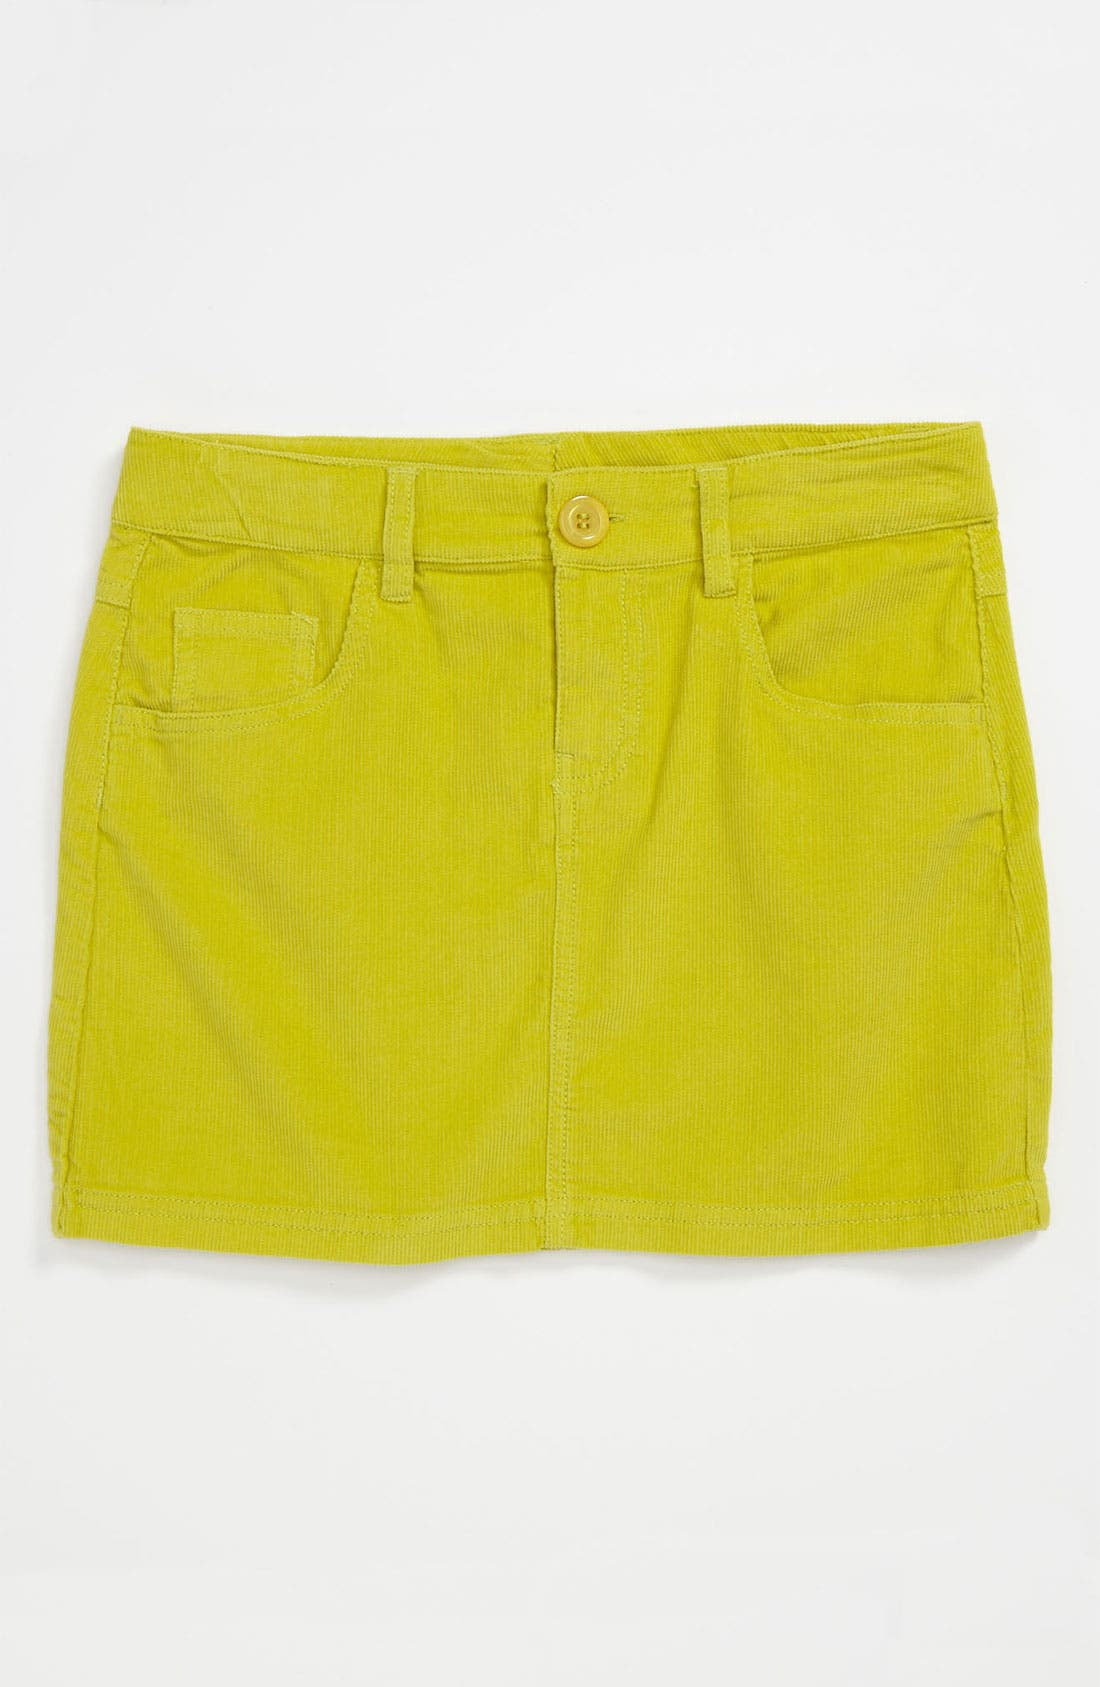 Alternate Image 1 Selected - United Colors of Benetton Kids Corduroy Skirt (Little Girls & Big Girls)